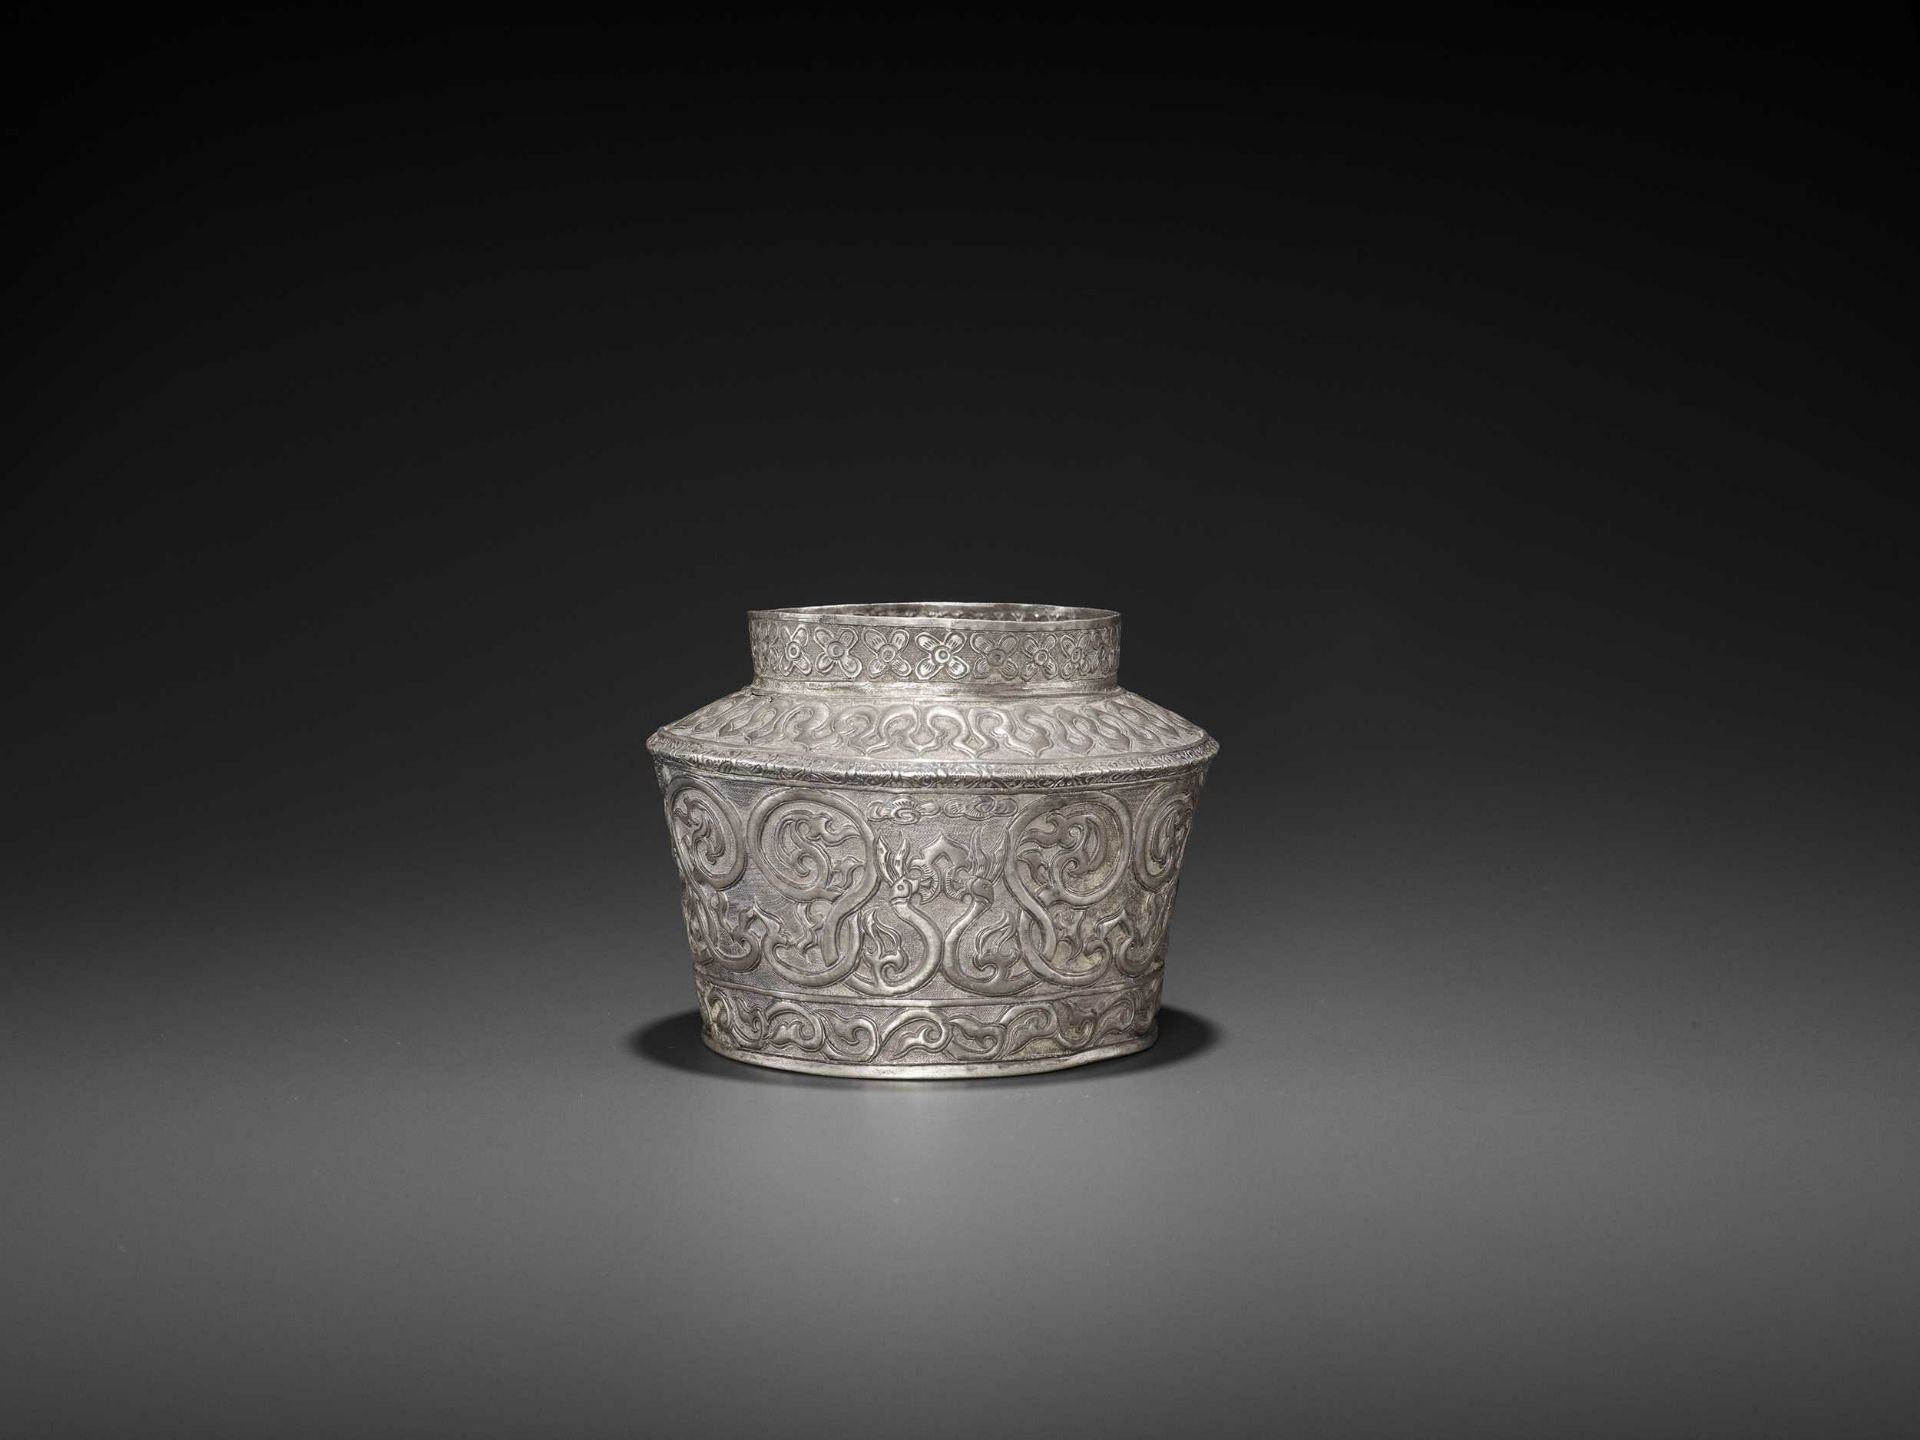 AN EXTREMELY RARE AND FINE CHAM SILVER REPOUSSÉ BOWL WITH PHOENIXES - Bild 4 aus 7